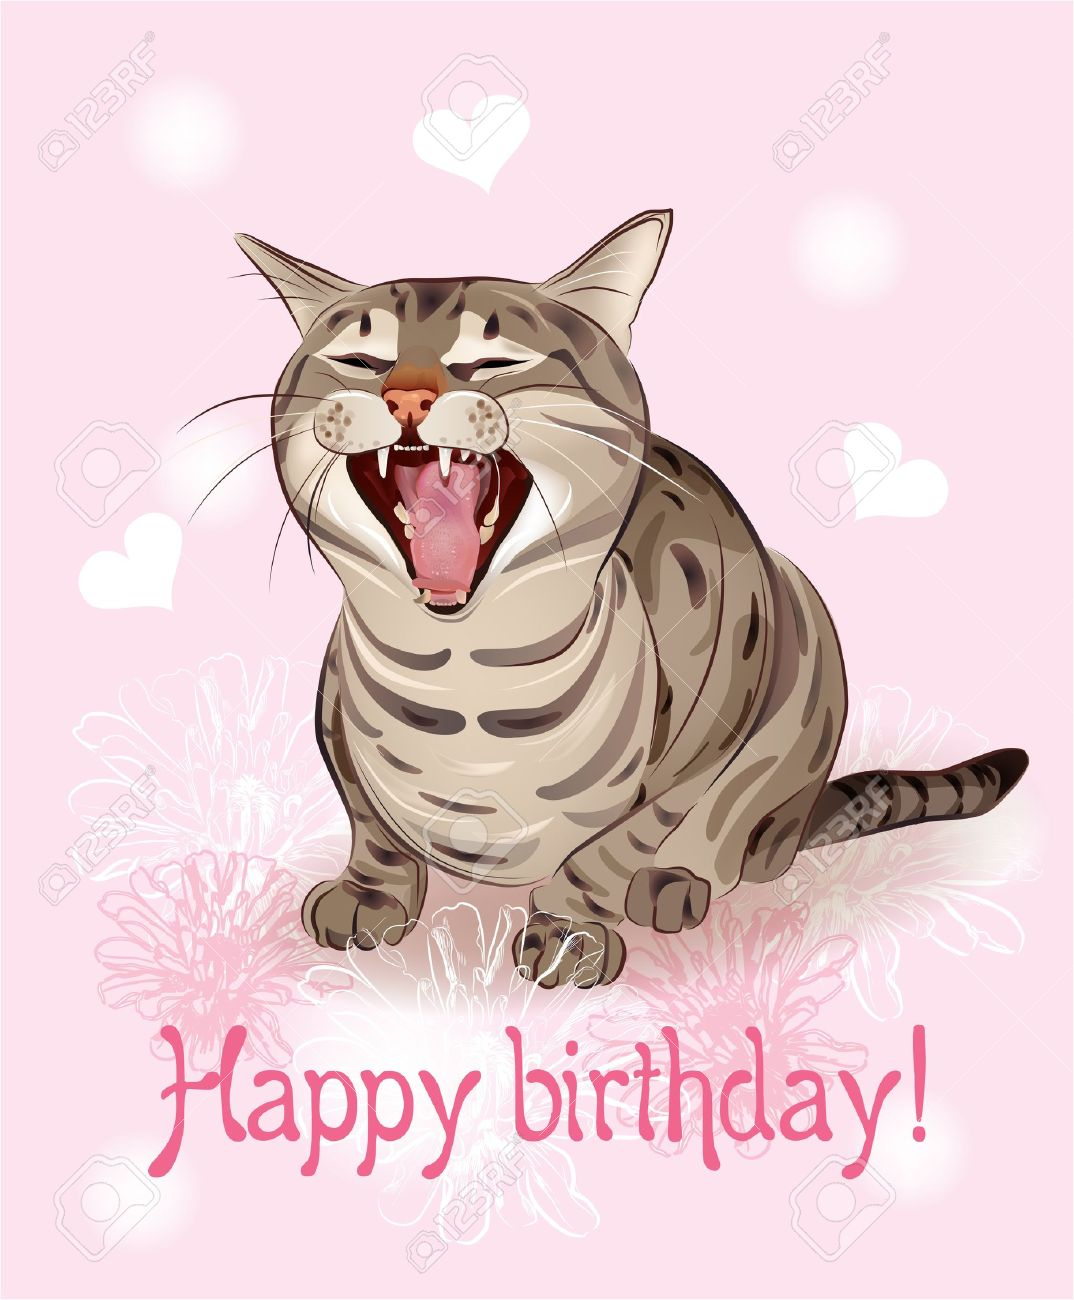 Happy Birthday Card Funny Cat Sings Greeting Song Pink – Happy Birthday Cards with Songs